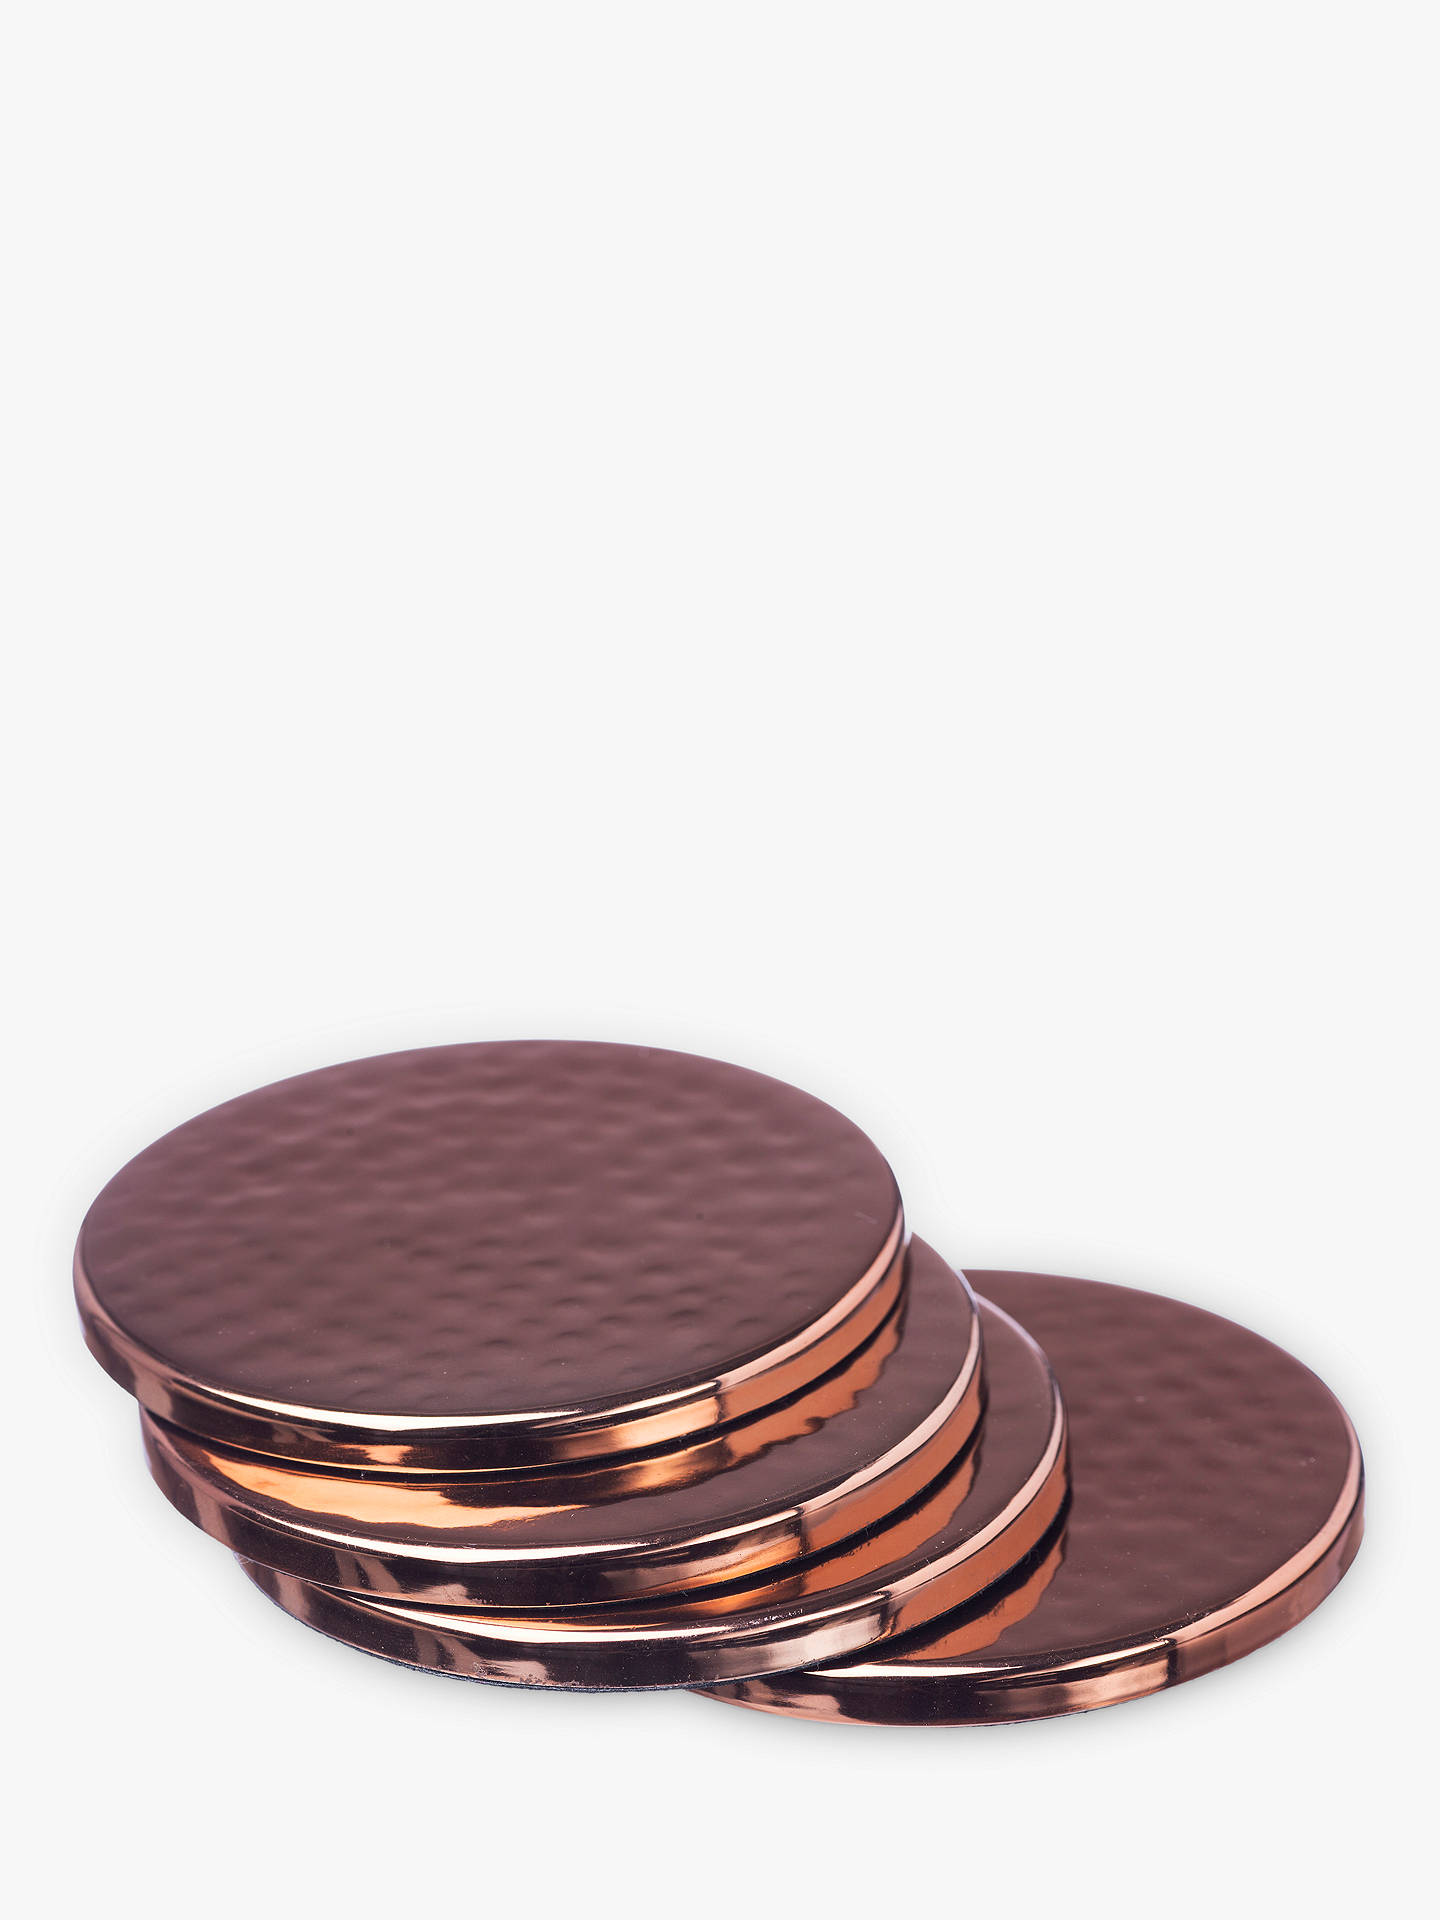 BuyJust Slate Copper Coasters, Set of 4 Online at johnlewis.com